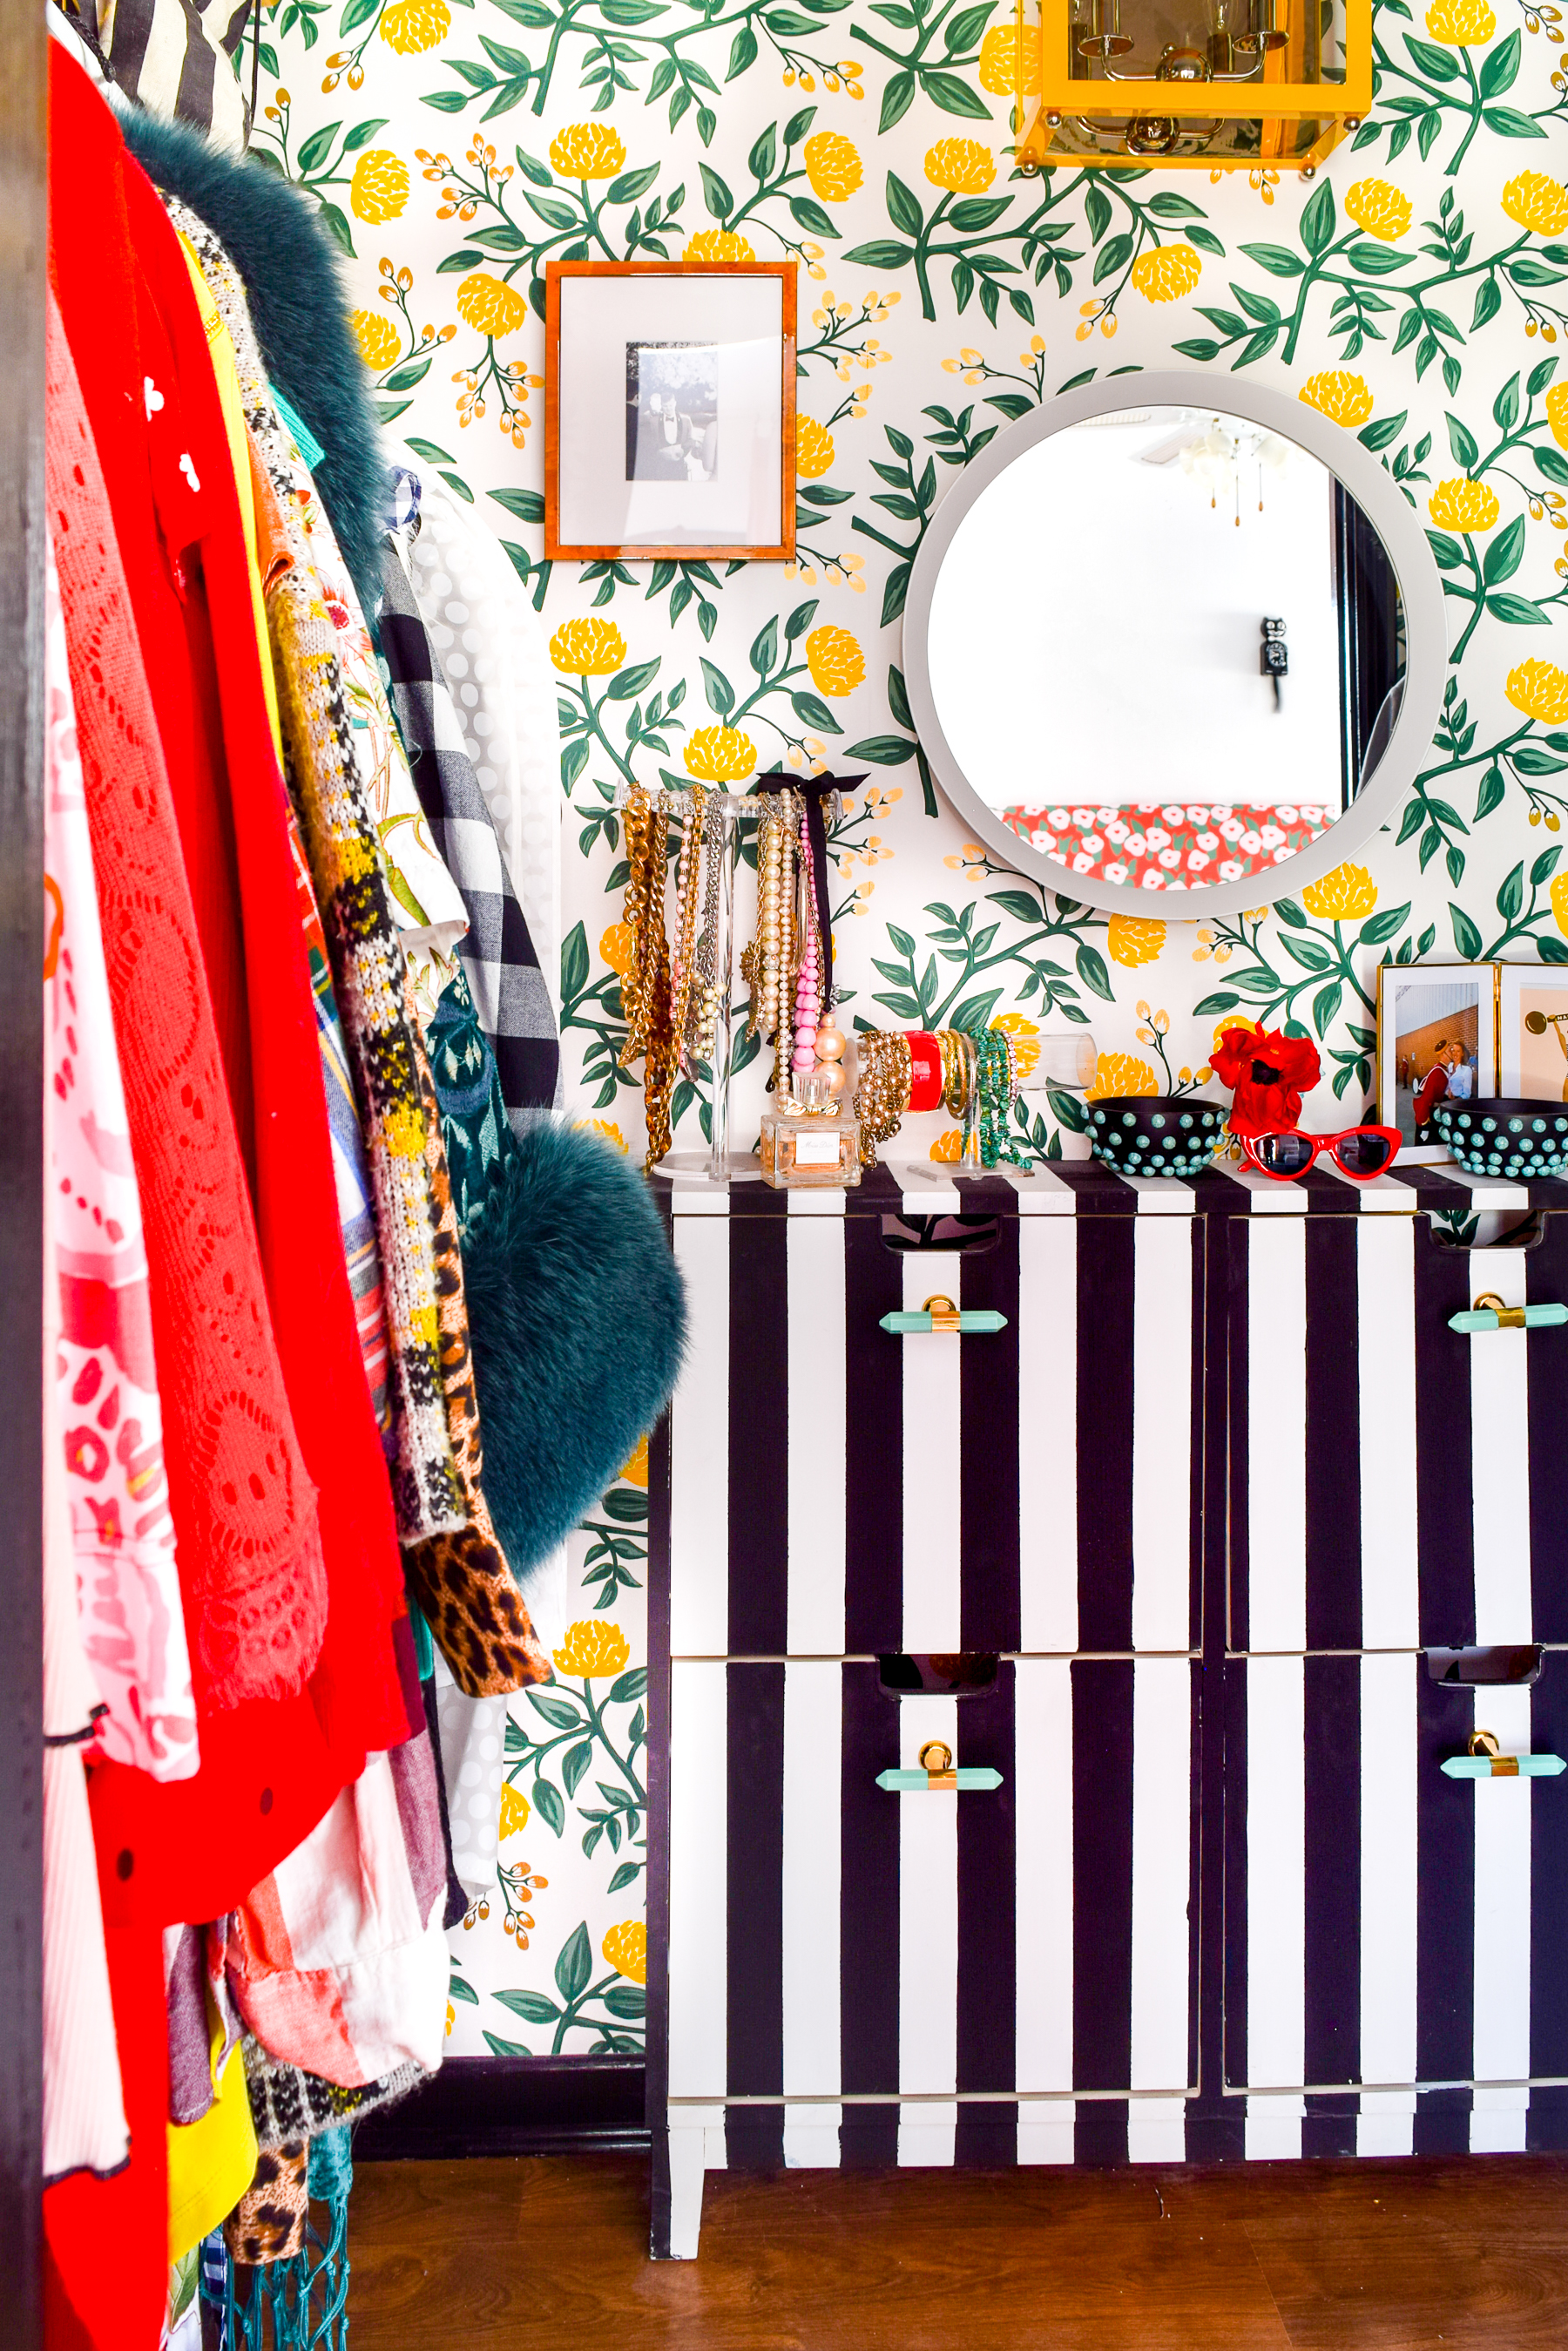 A Floral Glam Master Closet is something we all need, especially when it comes with gold shelf brackets from Crates & Pallet that look oh-so-chic.